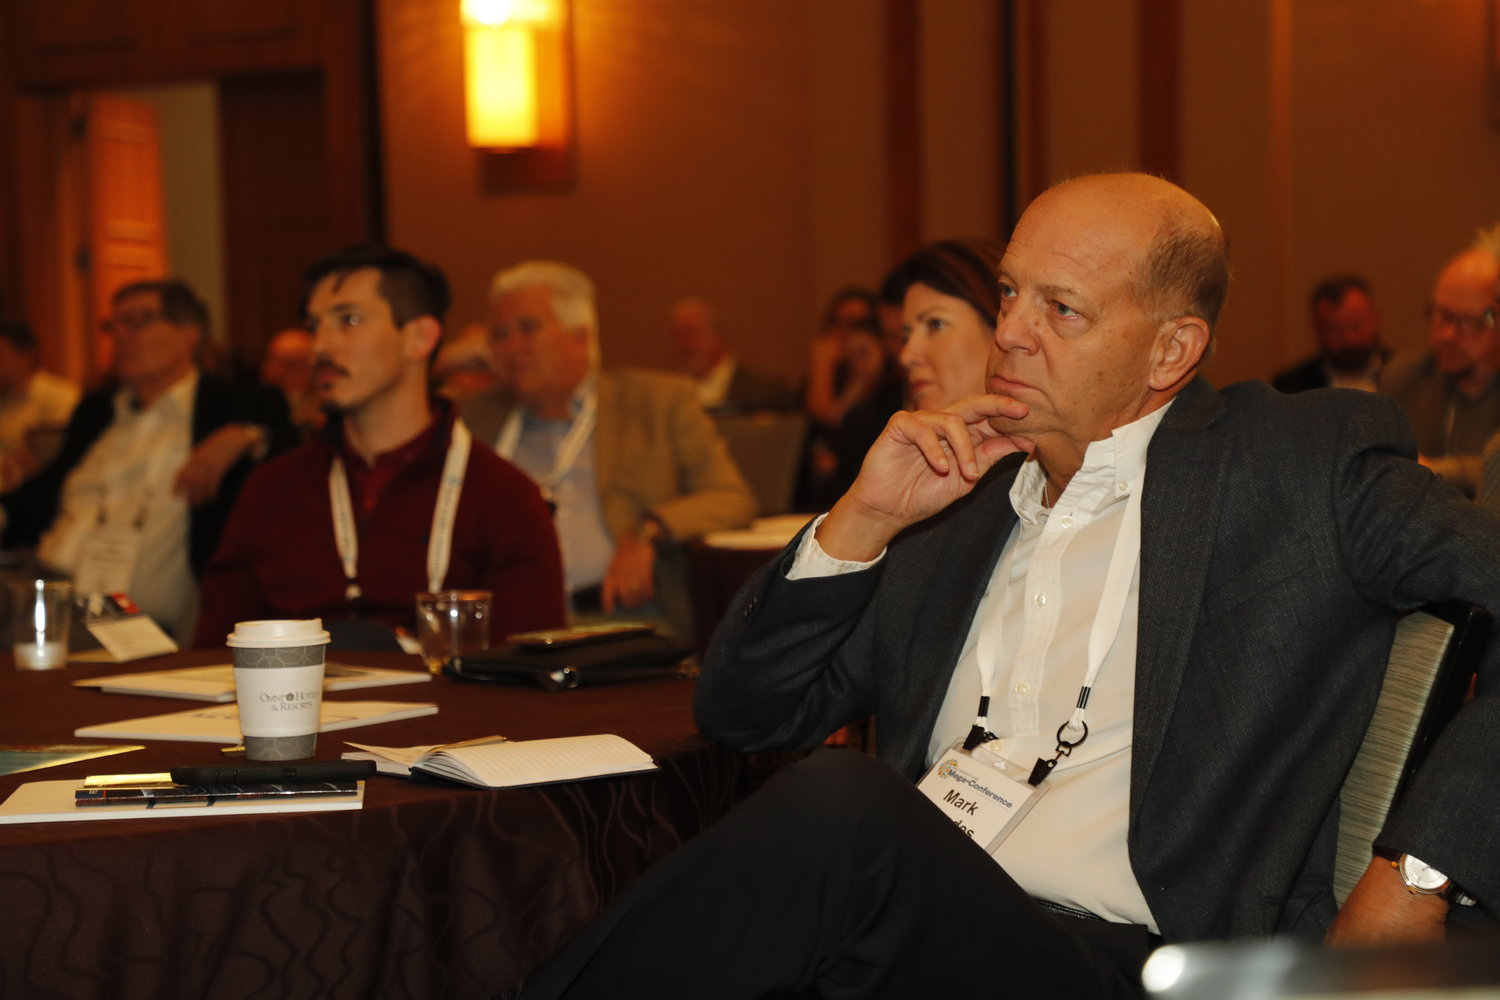 Tuesday photos of the 2020 Mega-Conference 2020 at the Omni Hotel in Fort Worth, Texas, Feb. 18, 2020. (Photo by Bob Booth)